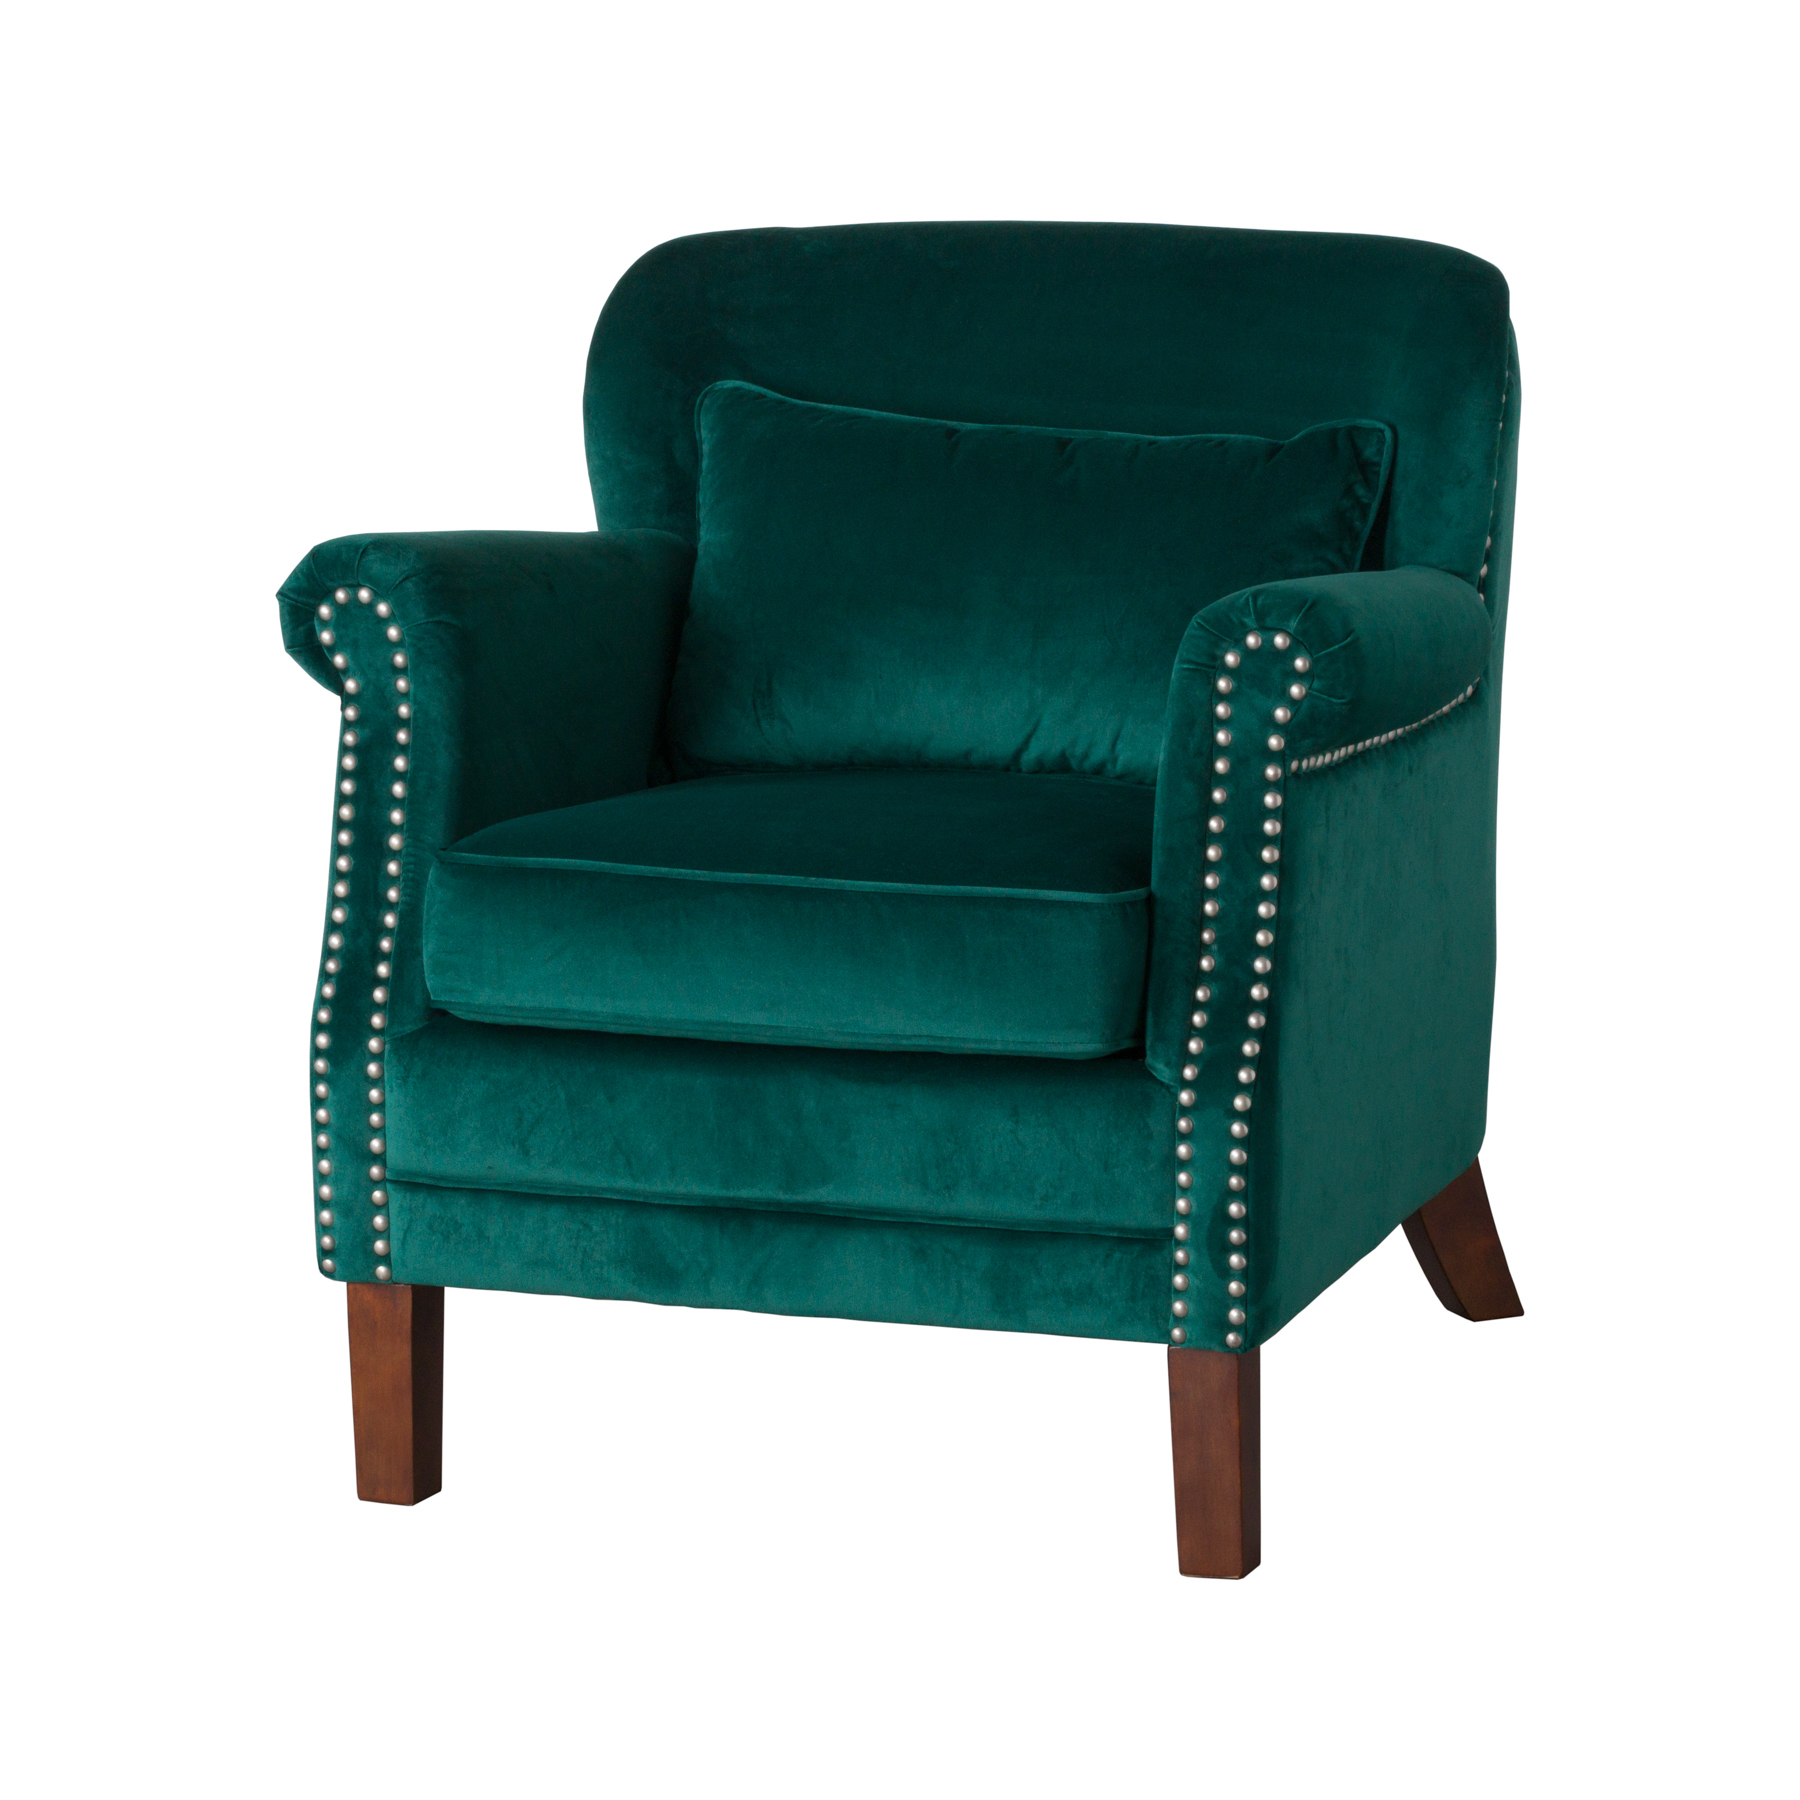 Emerald Green Accent Chair Free Shipping Emerald Green Velvet Armchair Fabric Low Back Occasioanl Accent Chair